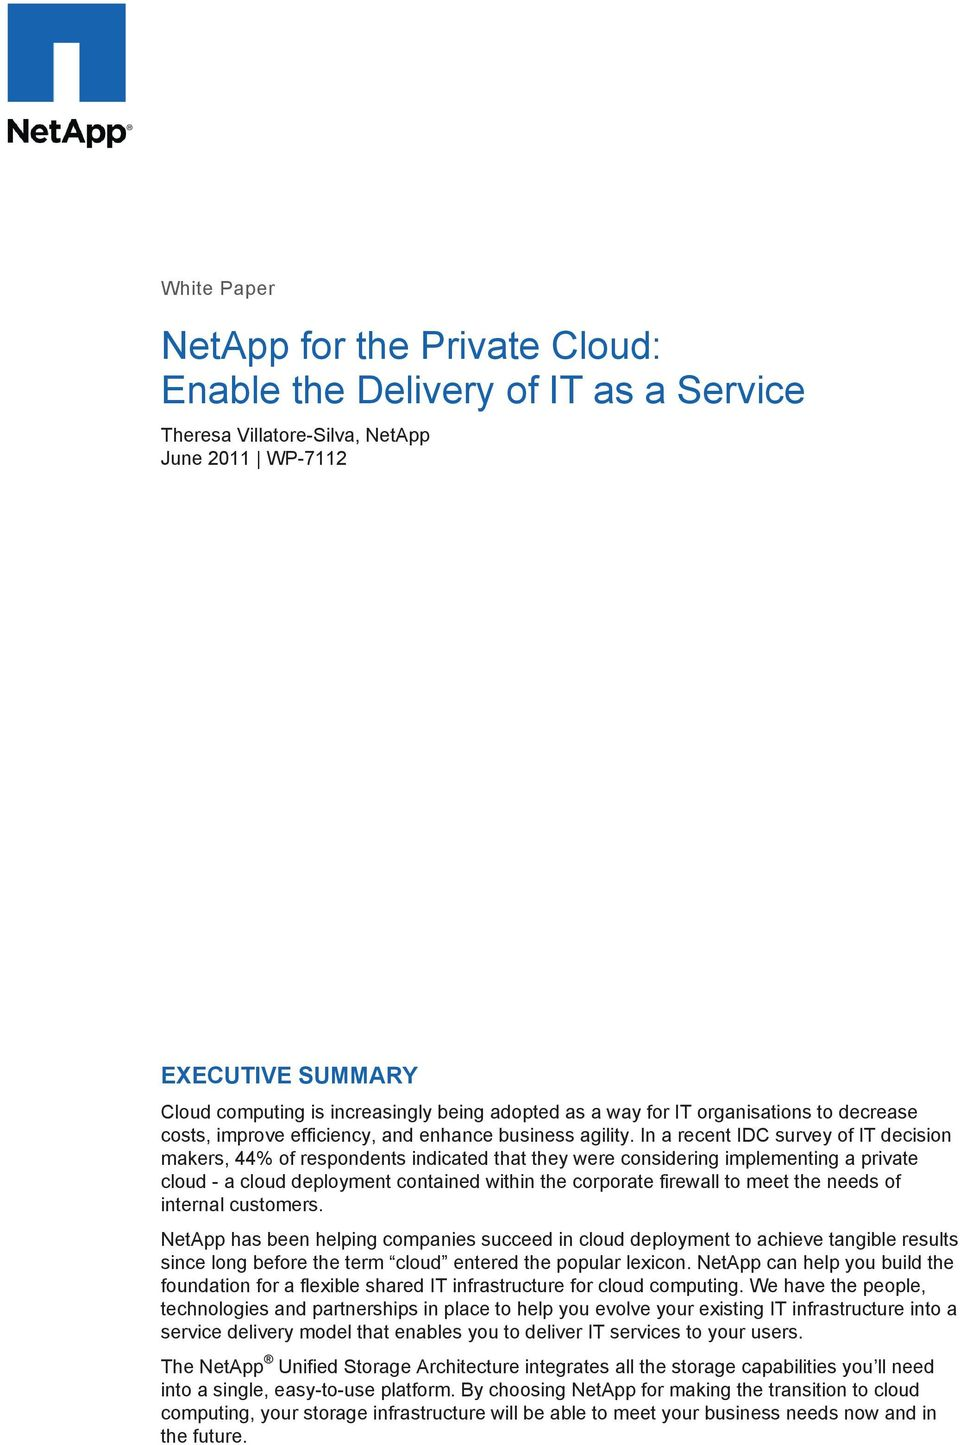 In a recent IDC survey of IT decision makers, 44% of respondents indicated that they were considering implementing a private cloud - a cloud deployment contained within the corporate firewall to meet